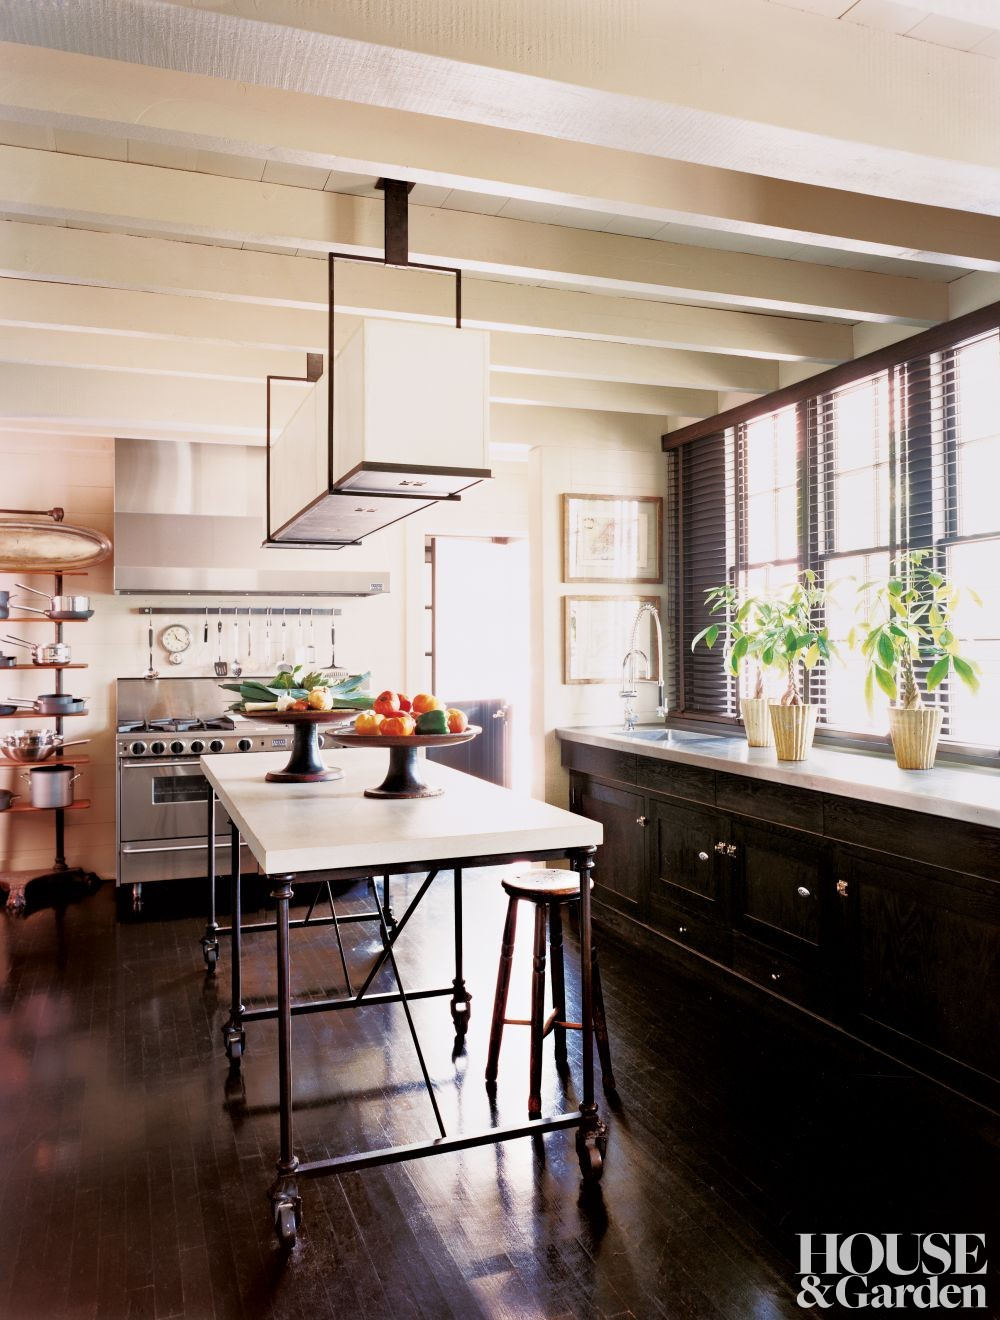 Traditional kitchen by mcalpine tankersley architecture by for The style kitchen nashville